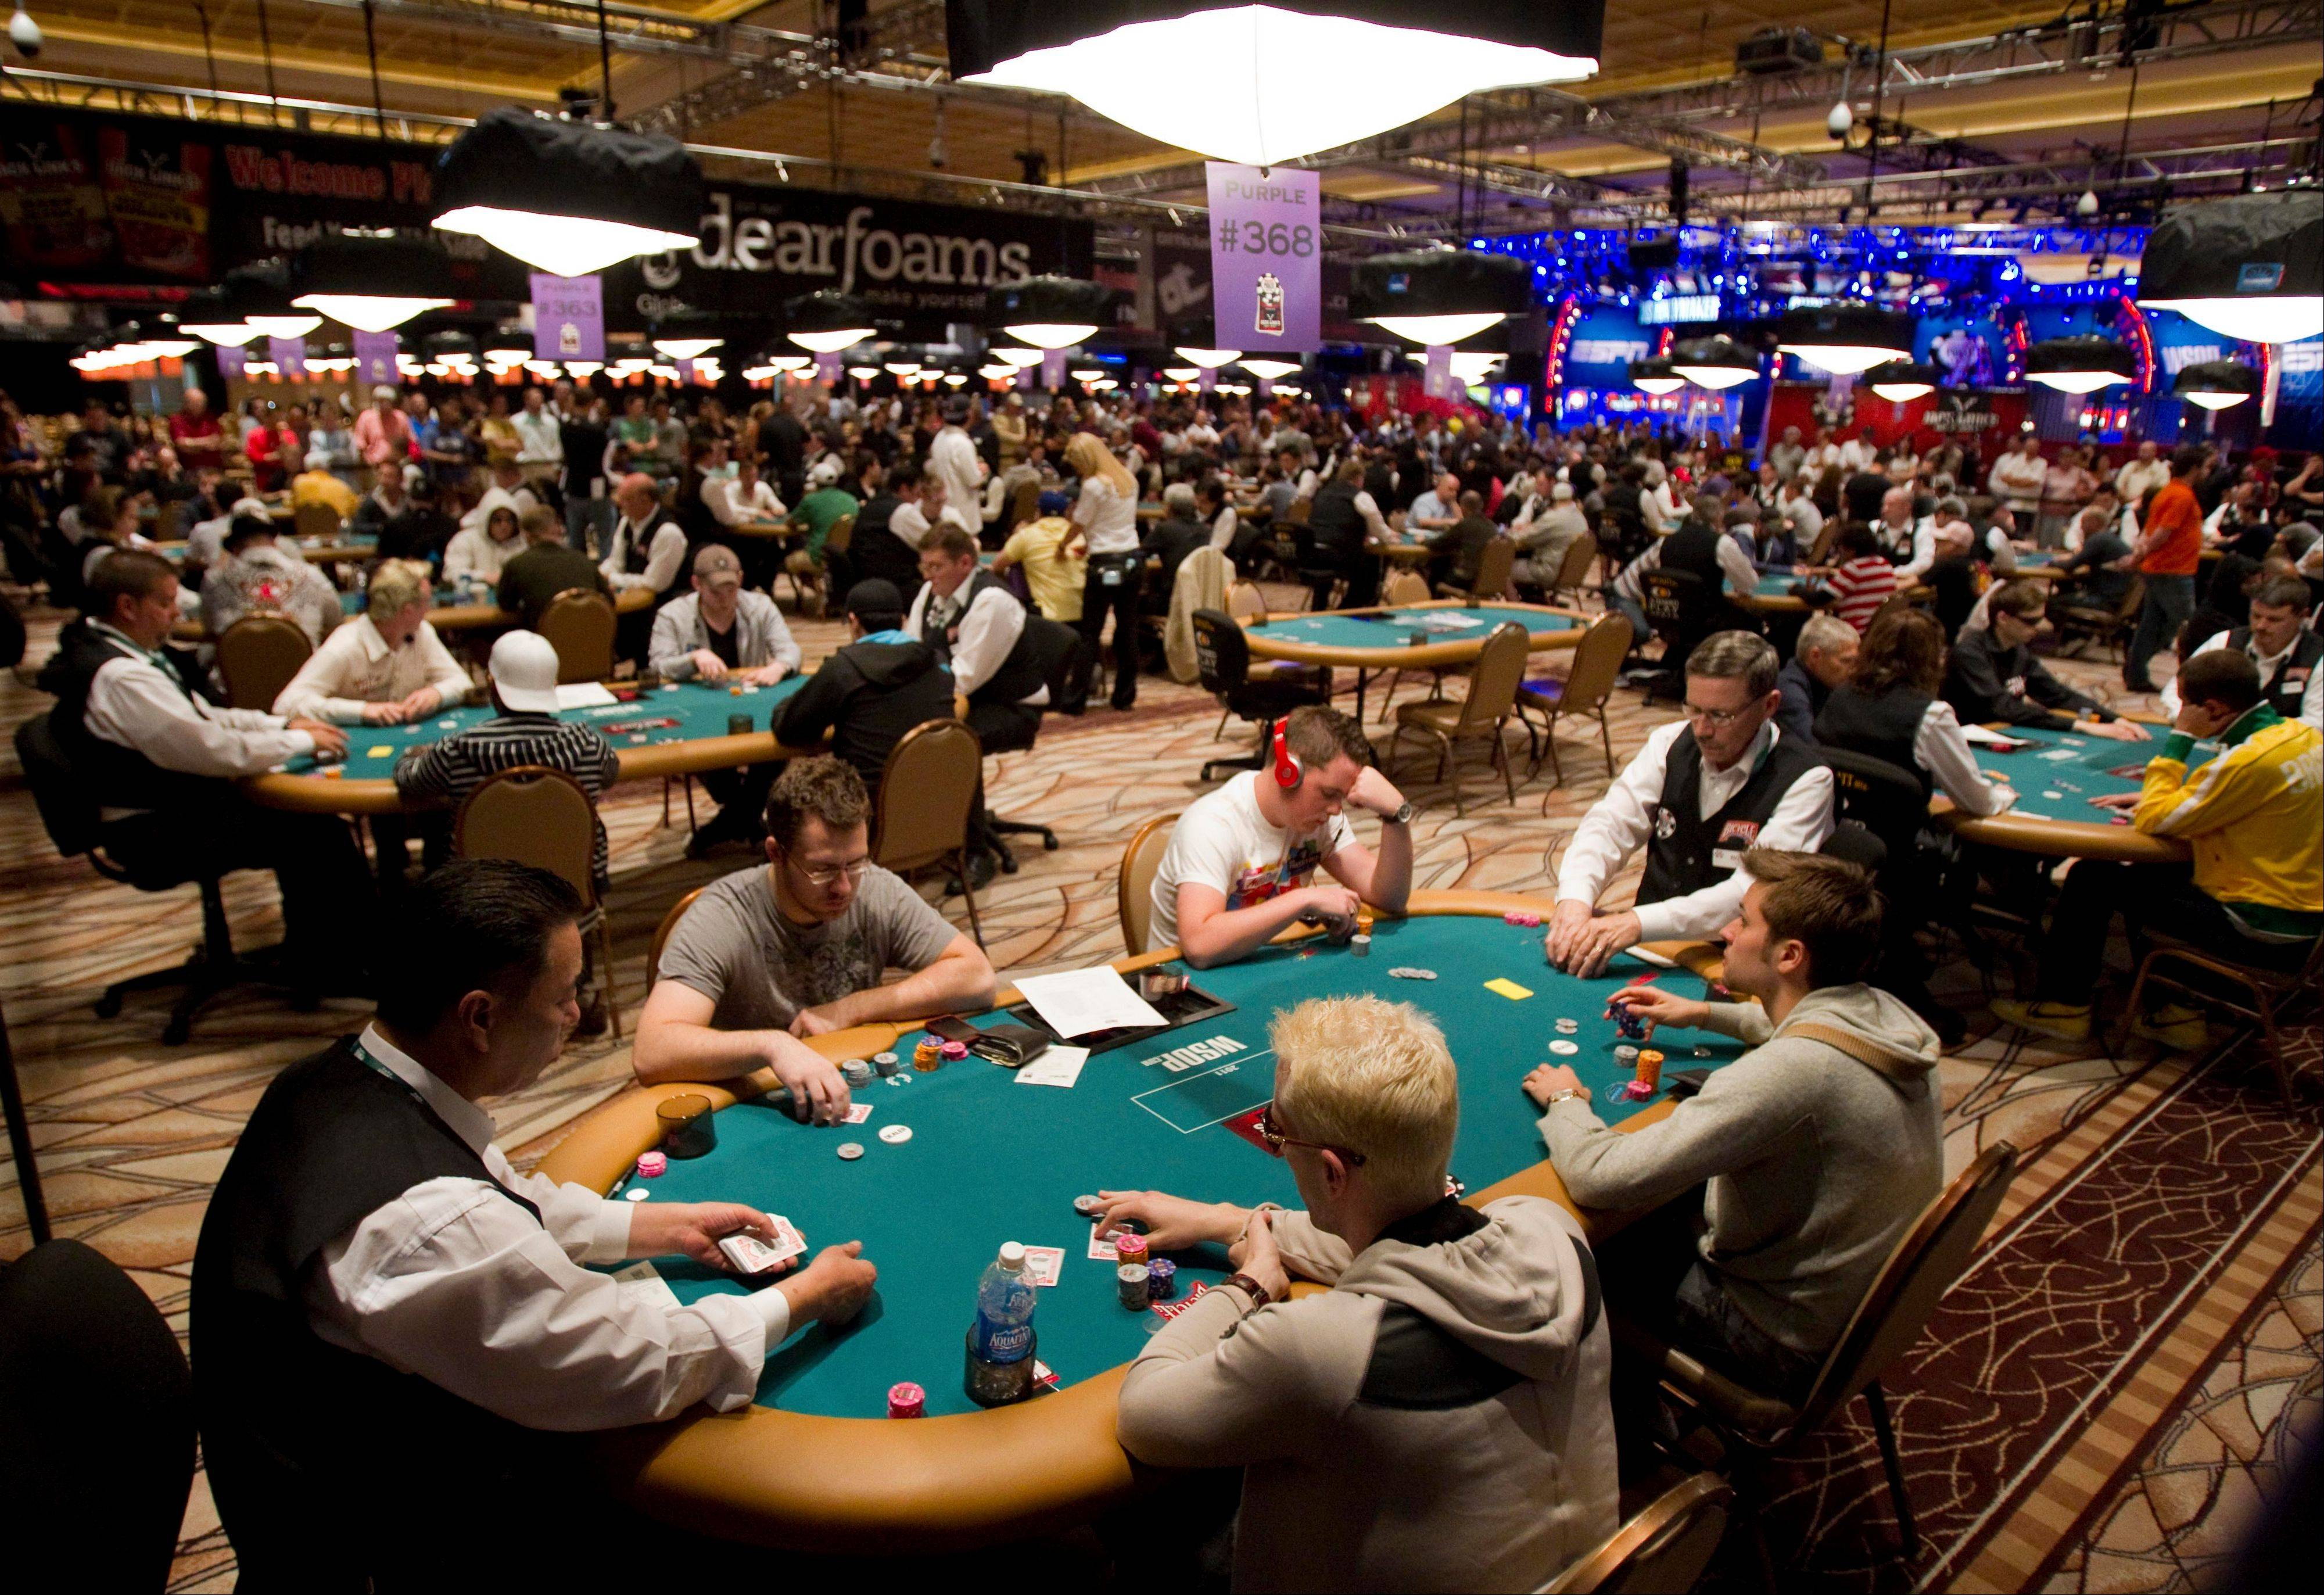 At the height of the poker fad, Las Vegas couldn't get enough of poker rooms. Now some of those rooms are folding. Four casinos yanked their poker tables last year, including the Tropicana, and three other rooms closed shop in 2011.